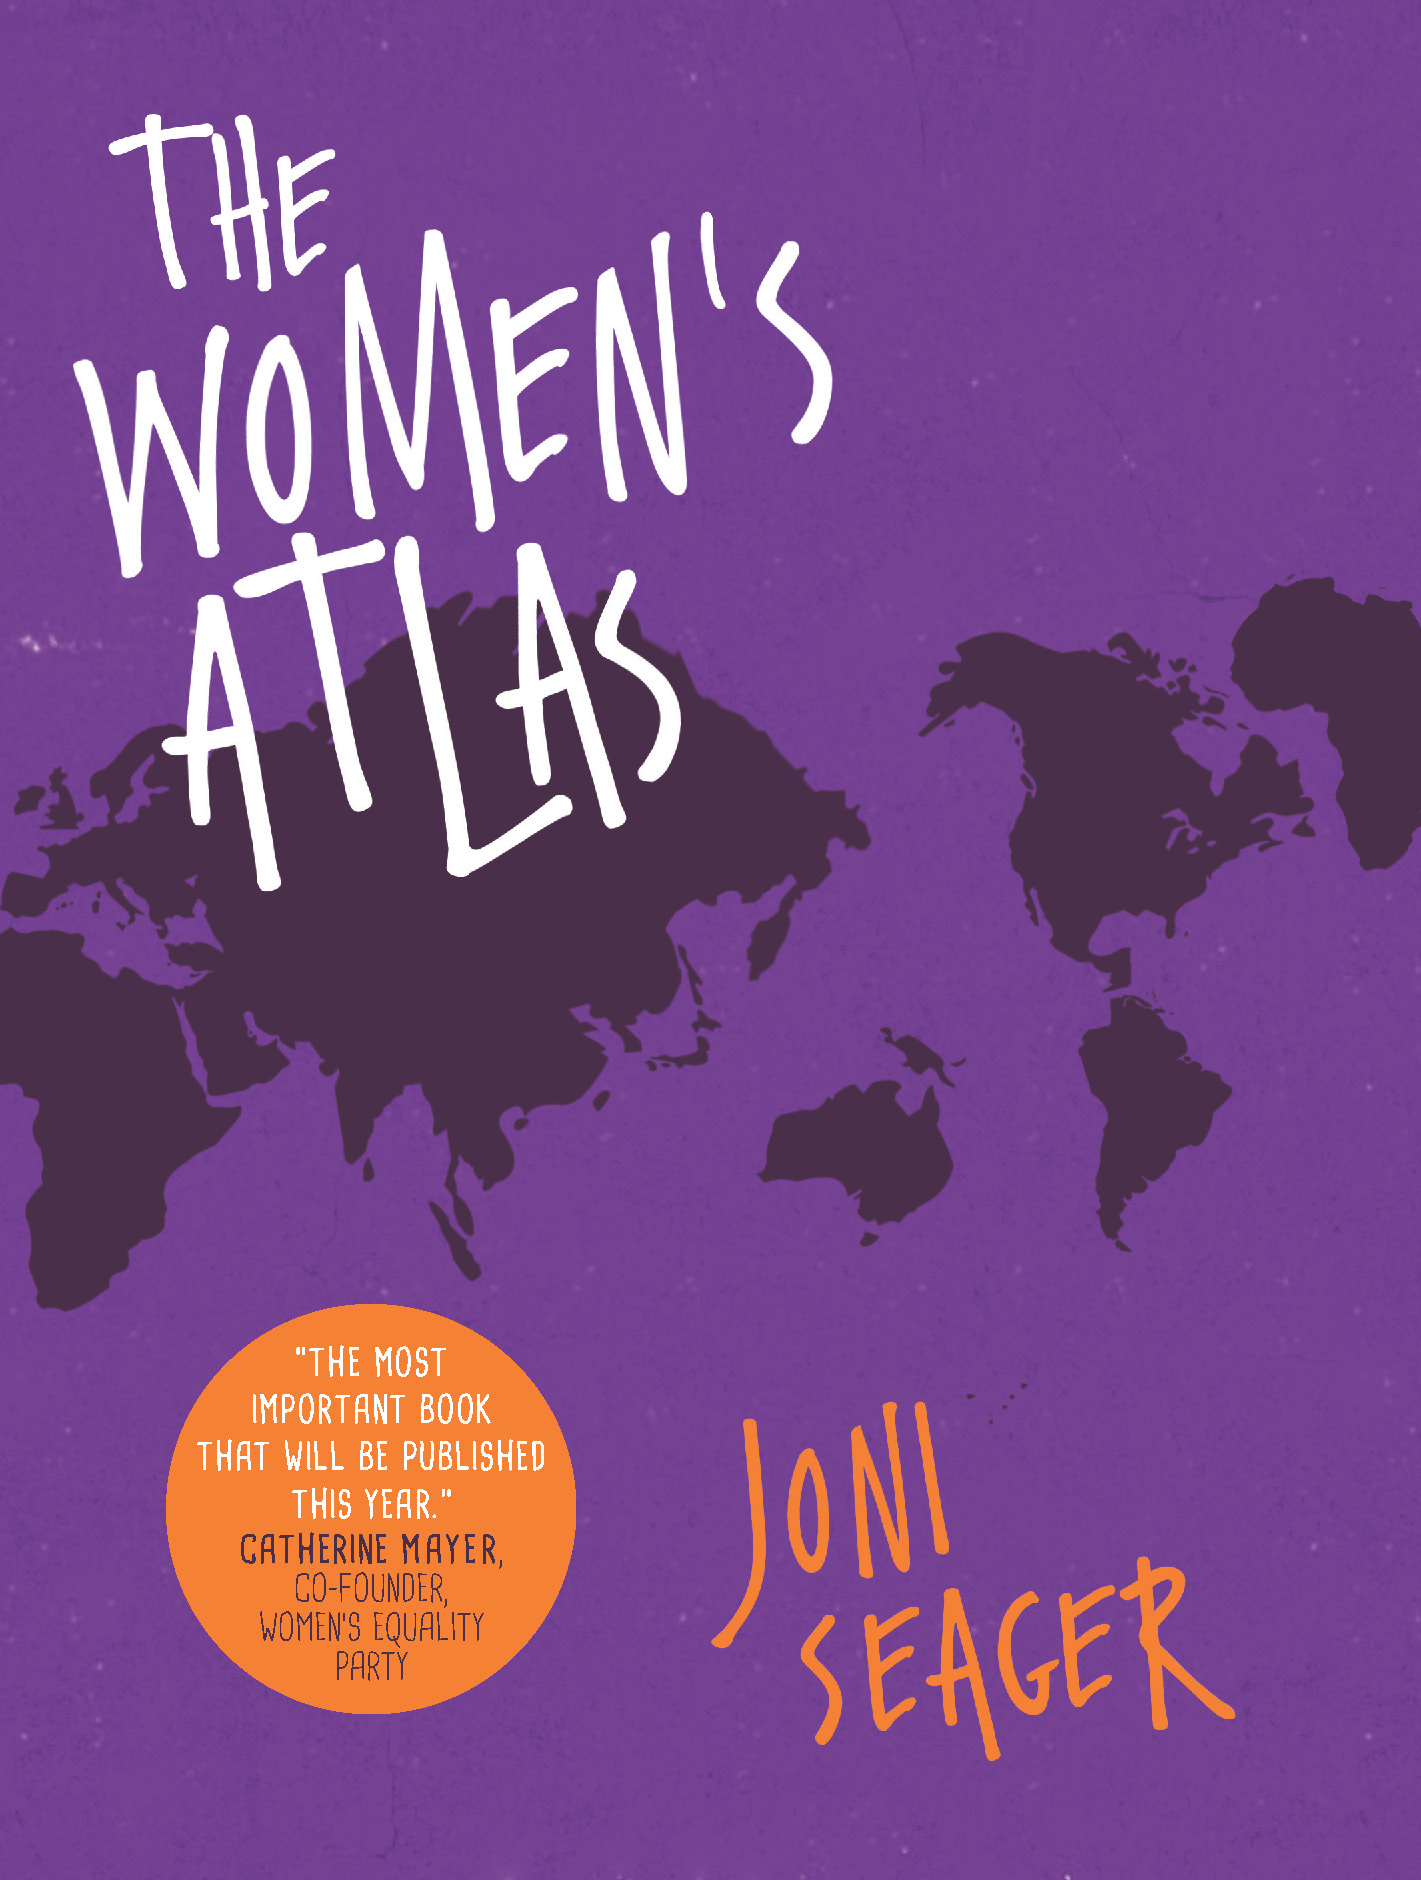 The Women's Atlas | Myriad